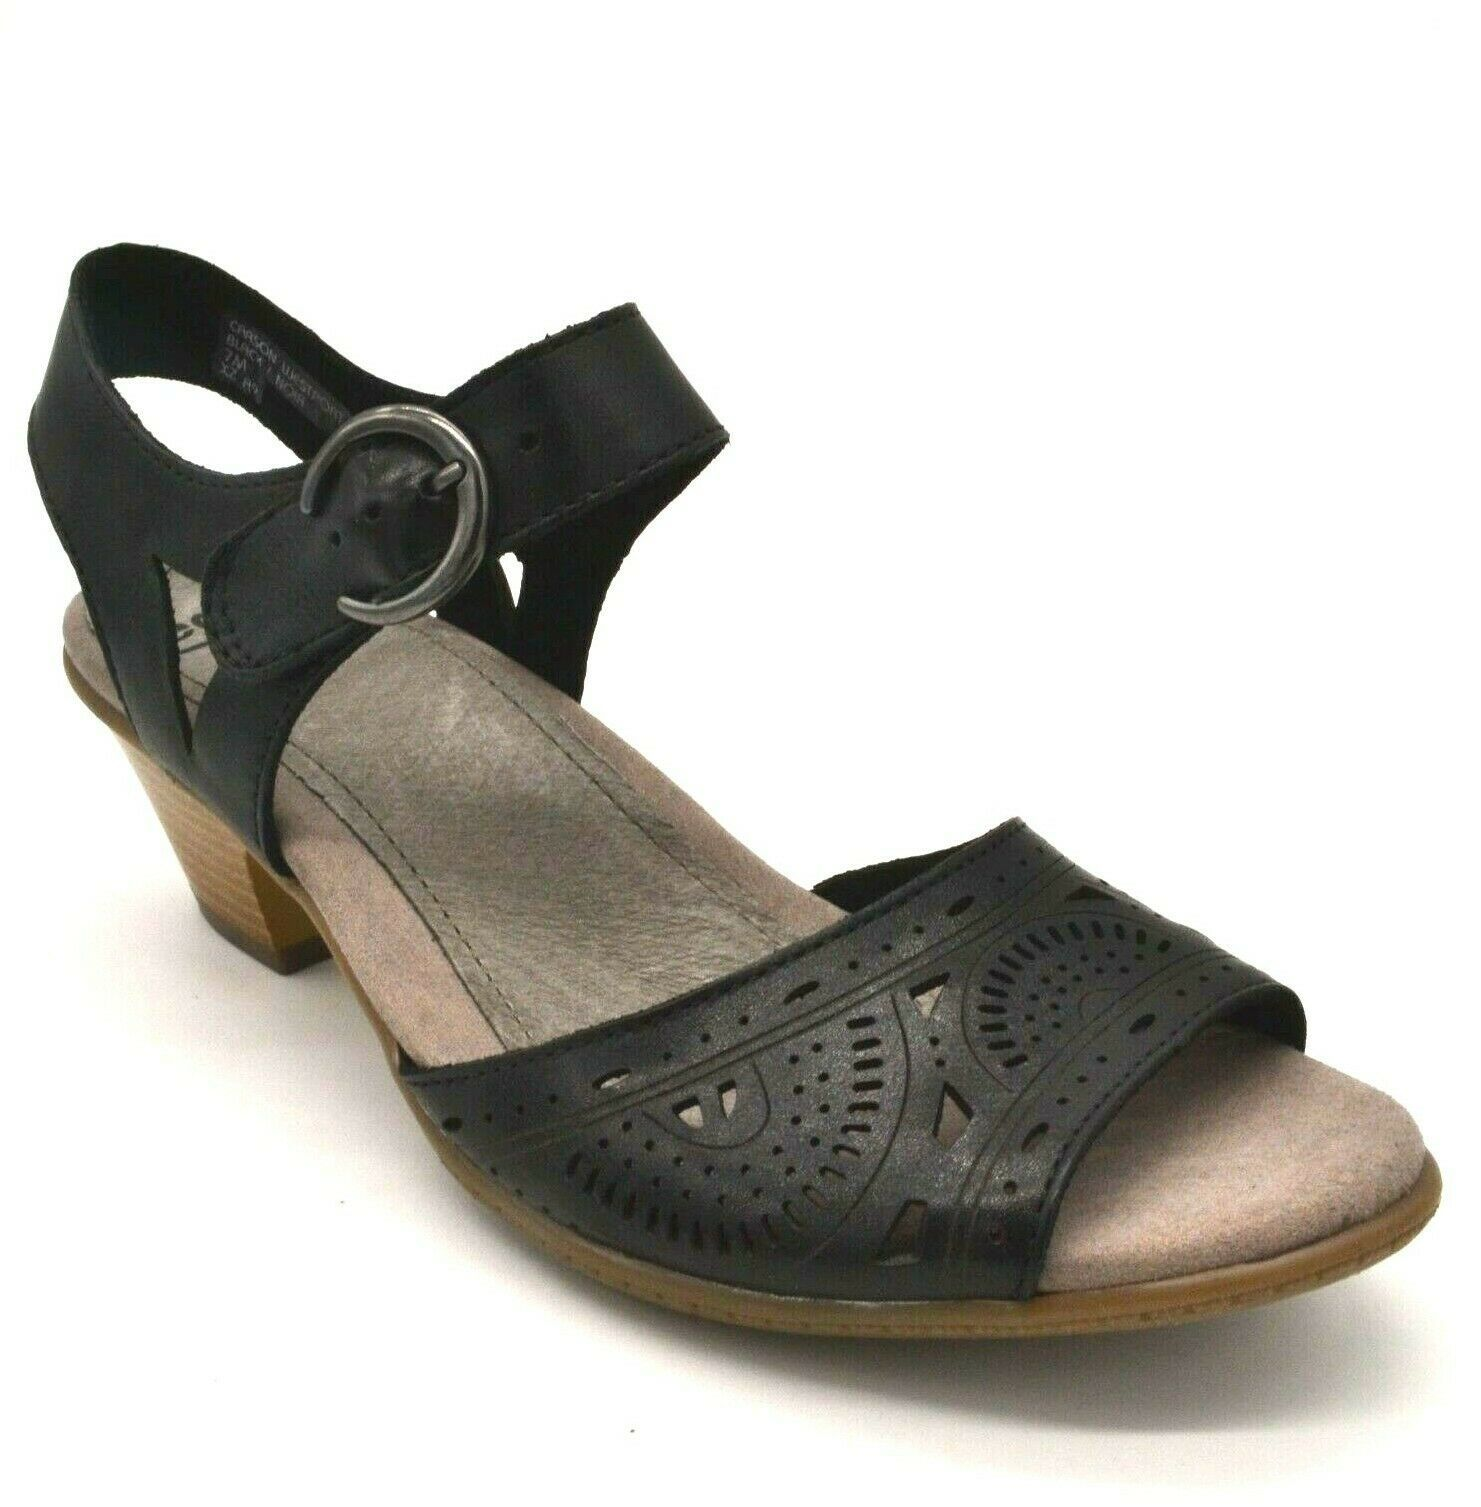 Earth Women Carson Westport Leather Wedge Slingback Sandals Black Size 7.5W NEW - $63.35